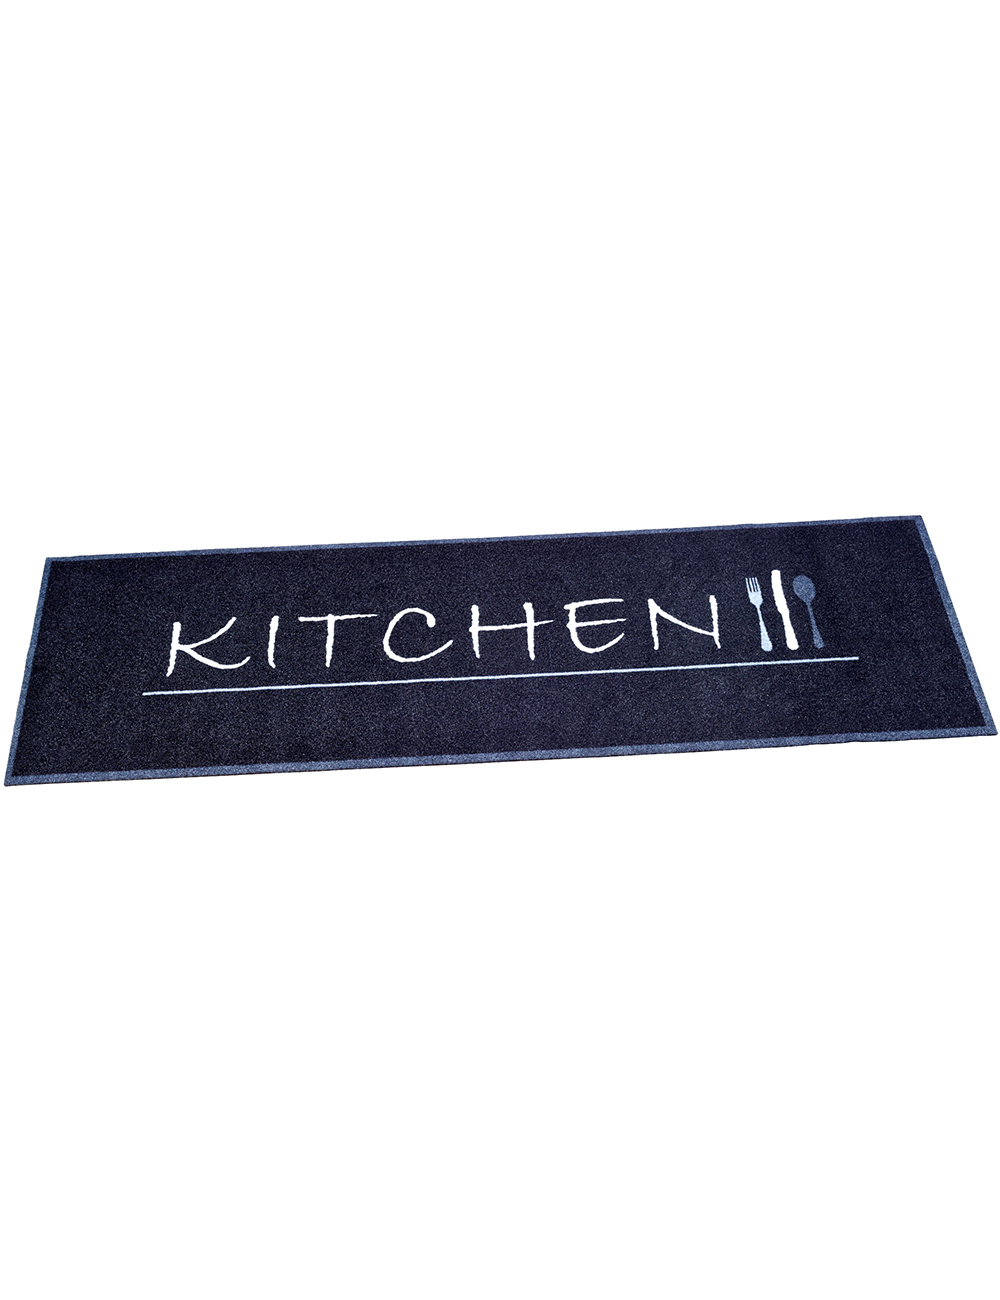 Tapis de cuisine kitchen moderne et de qualit for Tapis de cuisine original